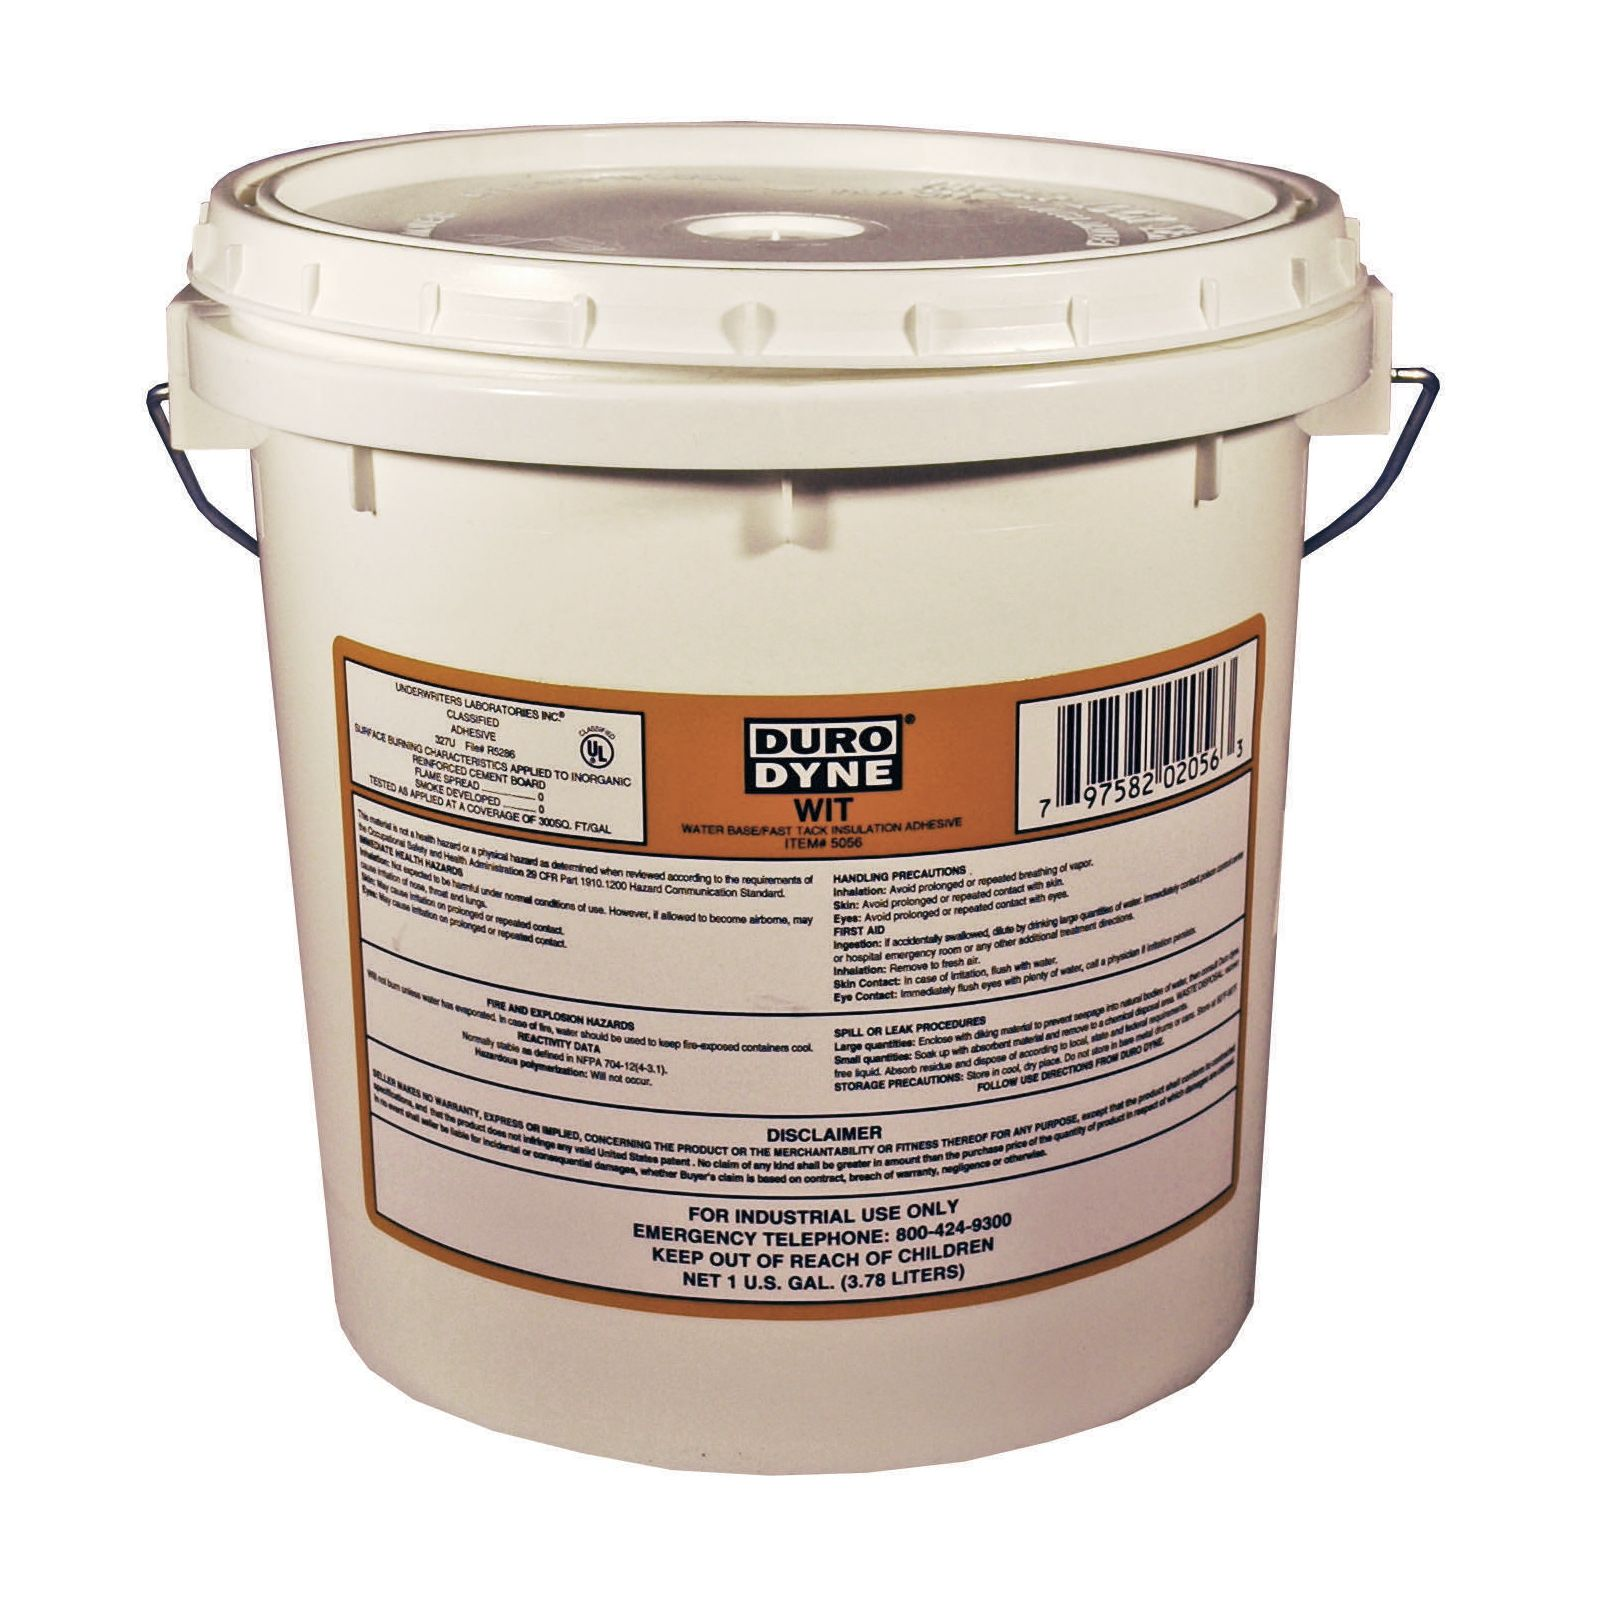 Duro Dyne 5056 -  High Viscosity Water Based Adhesive, 1 Gallon